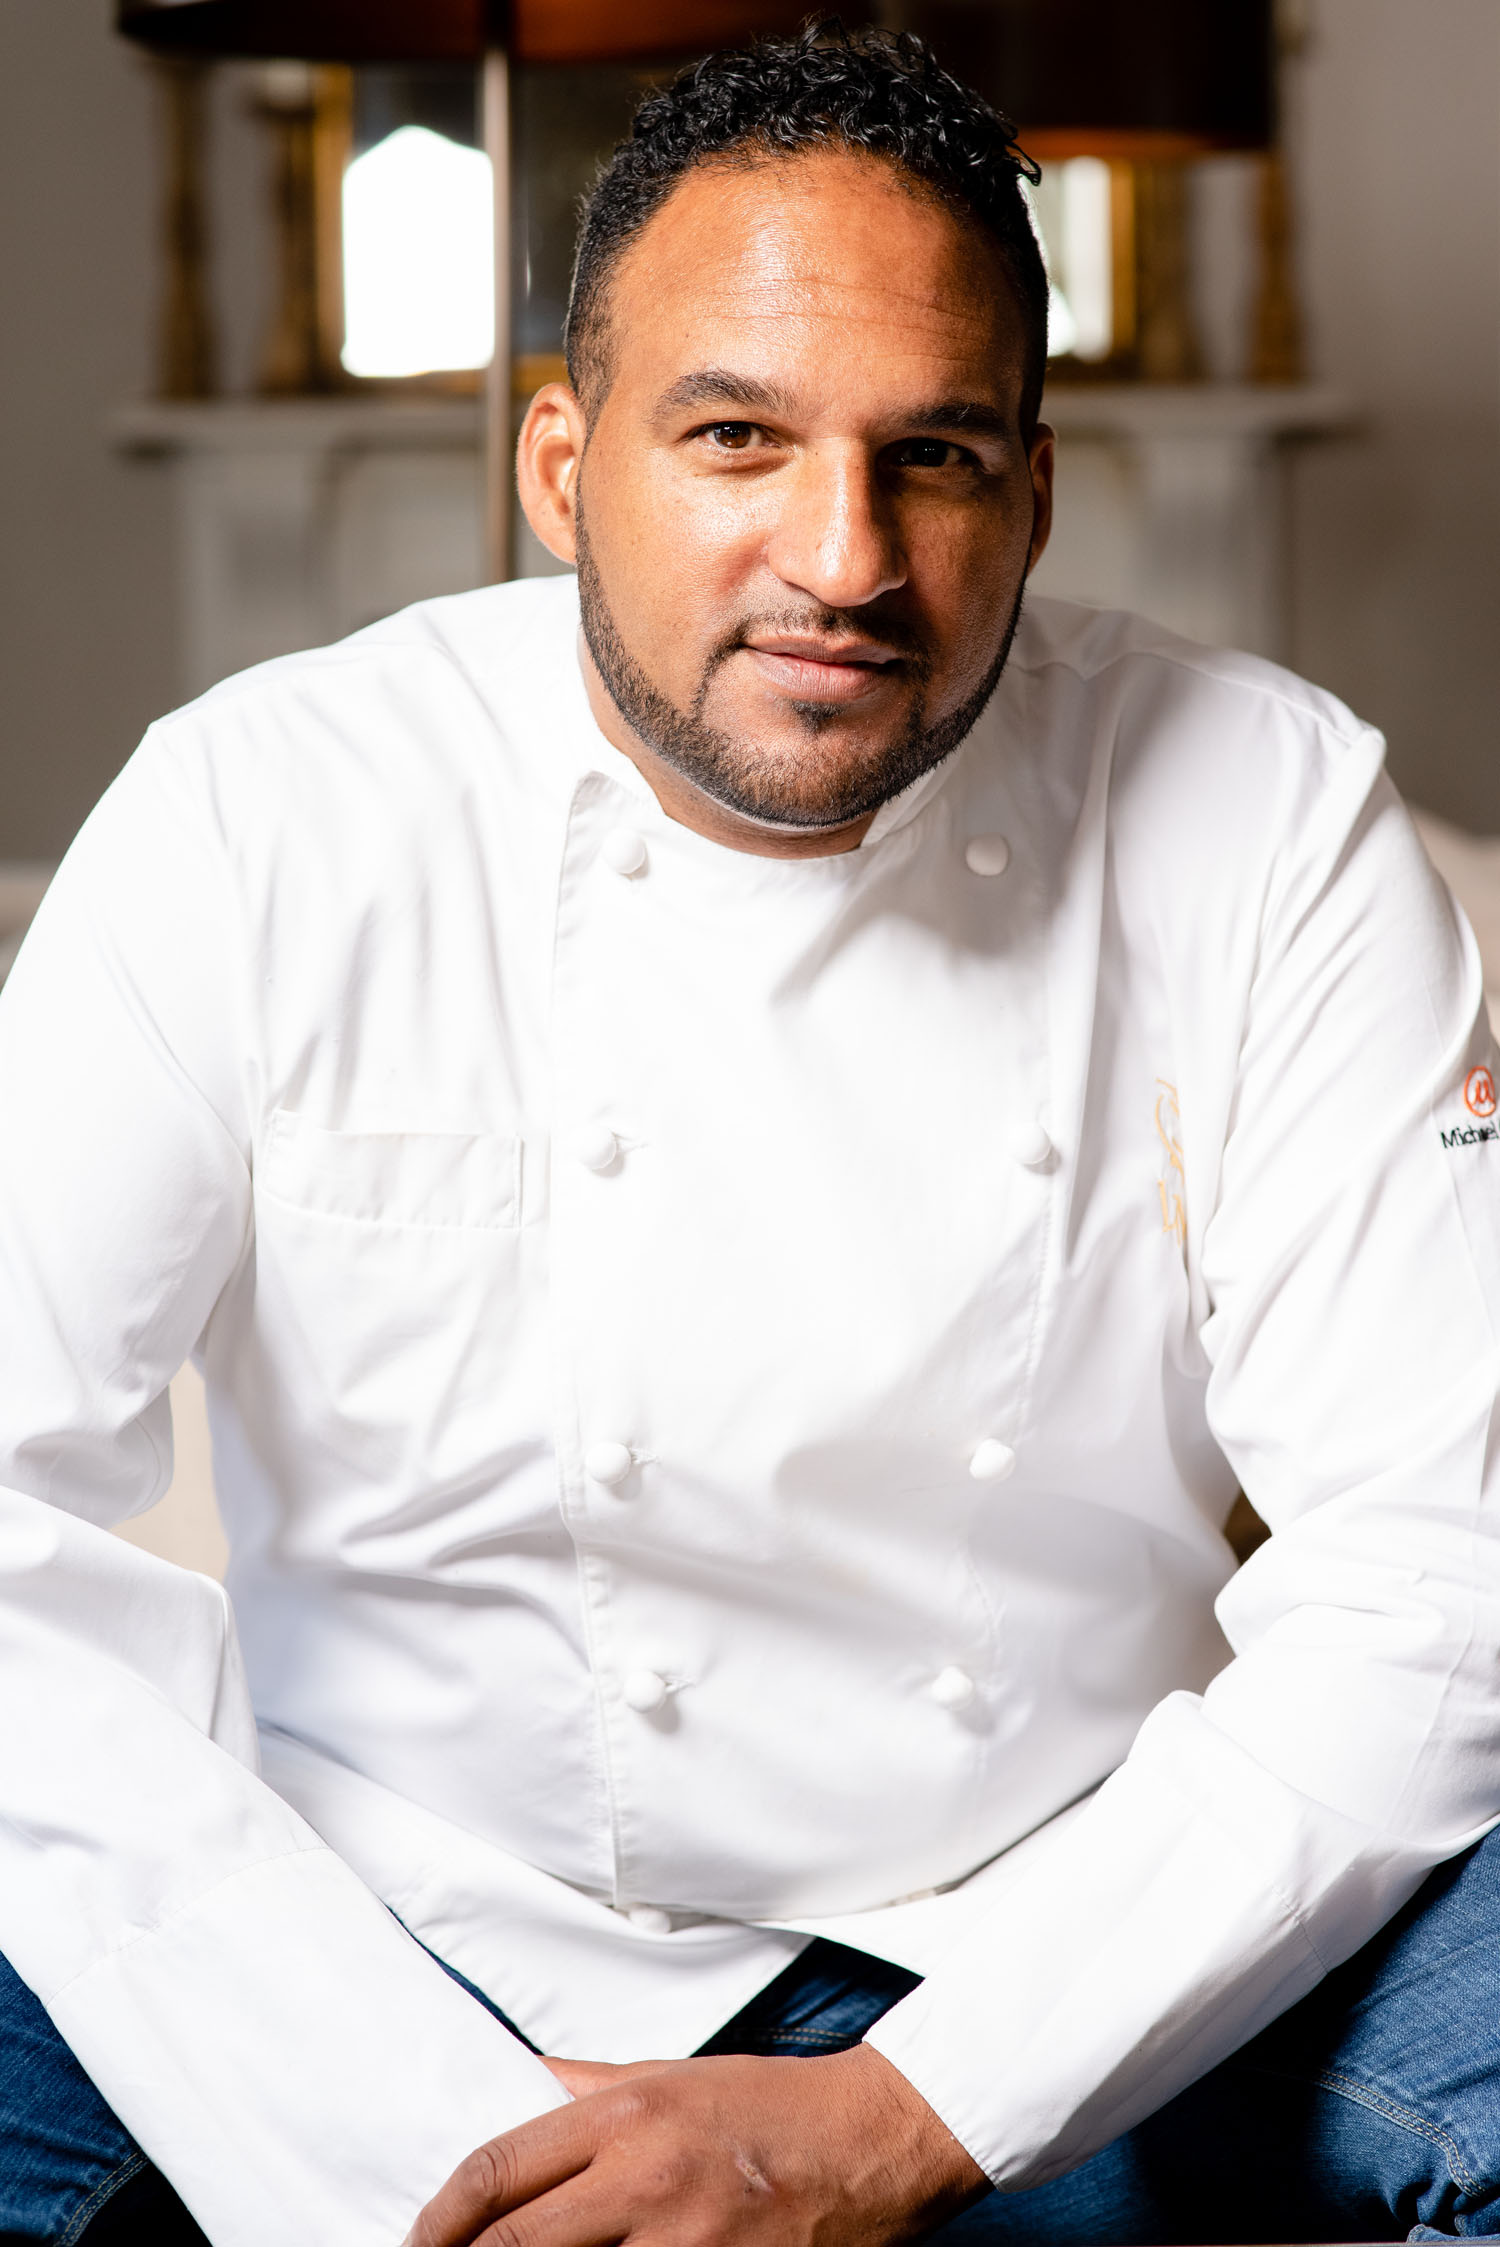 Michael Caines Lord's